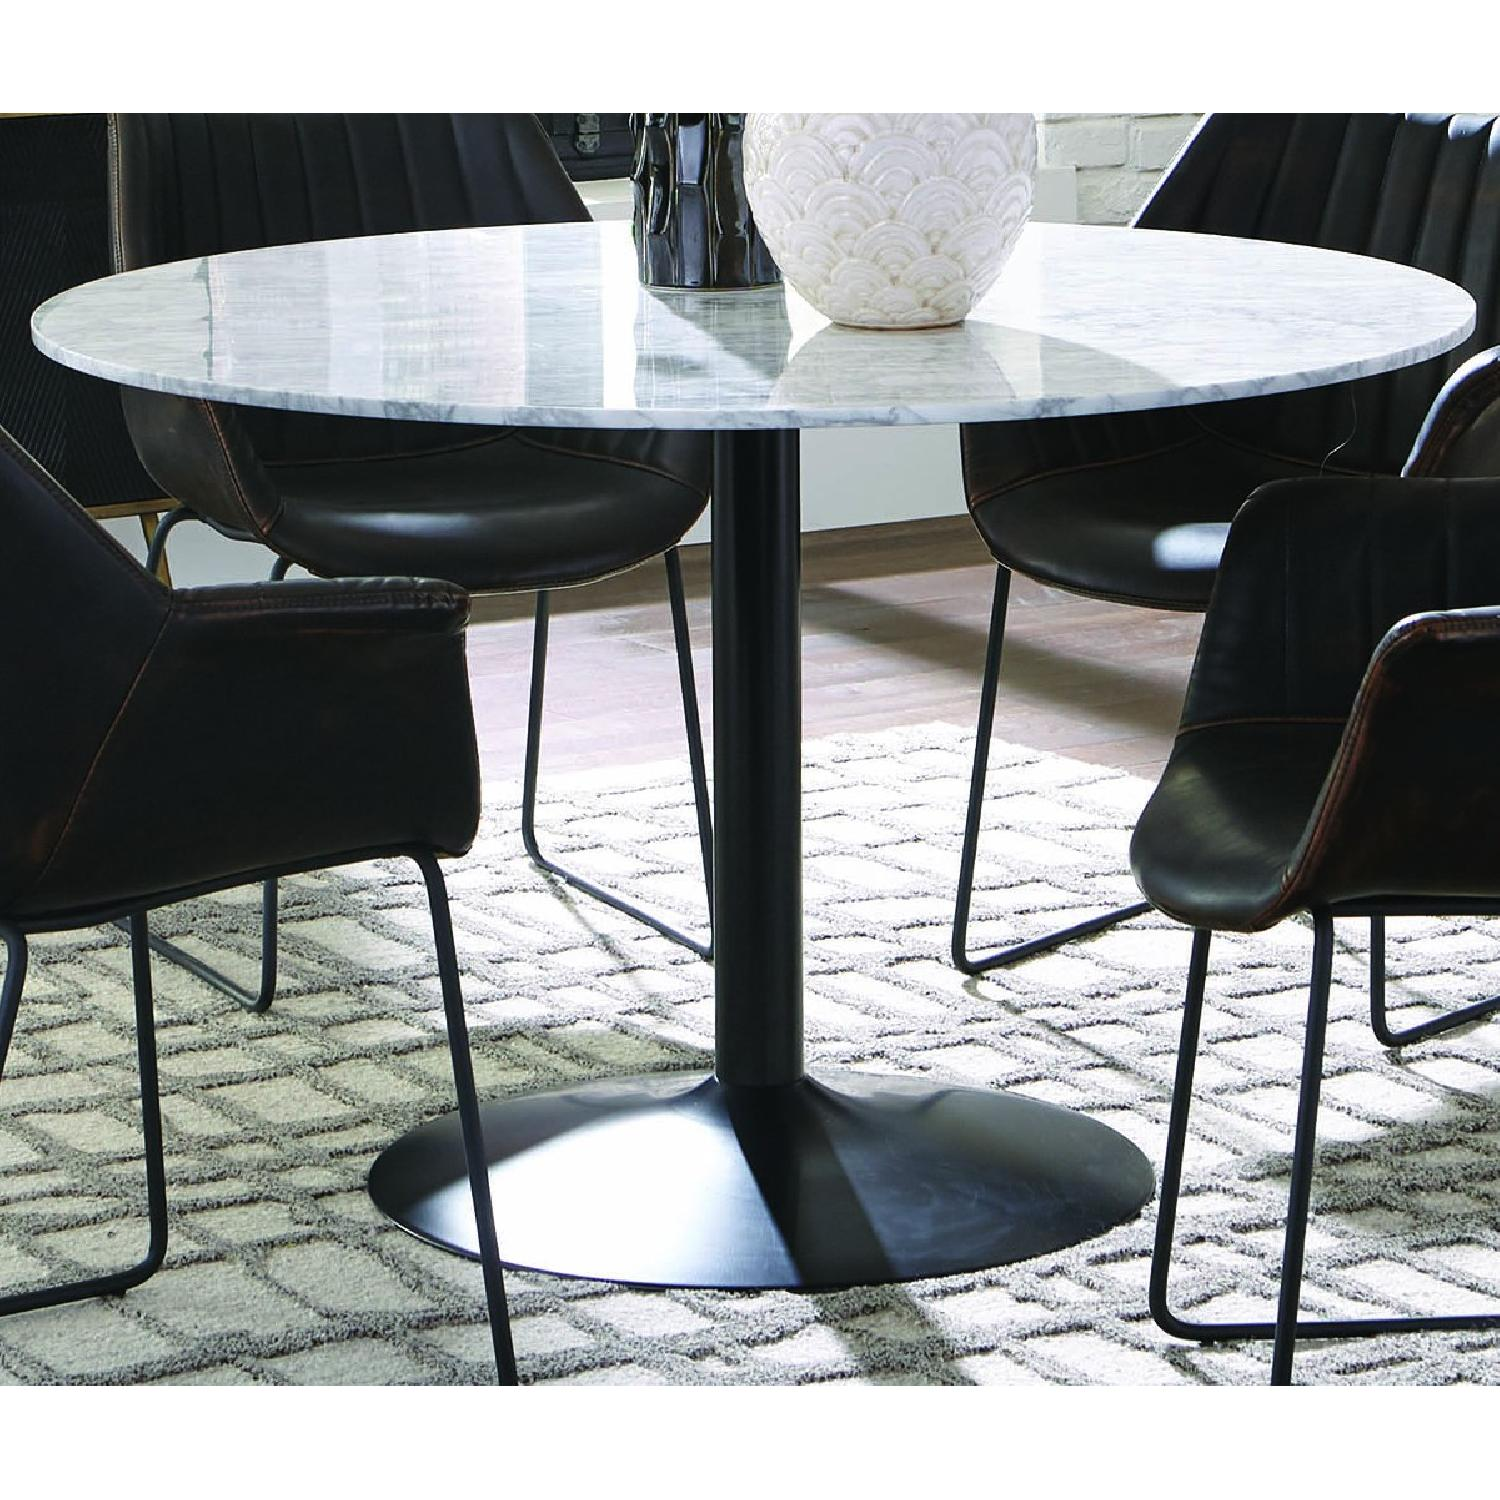 Modern Italian Marble Top Dining Table w/ Black Base - image-2